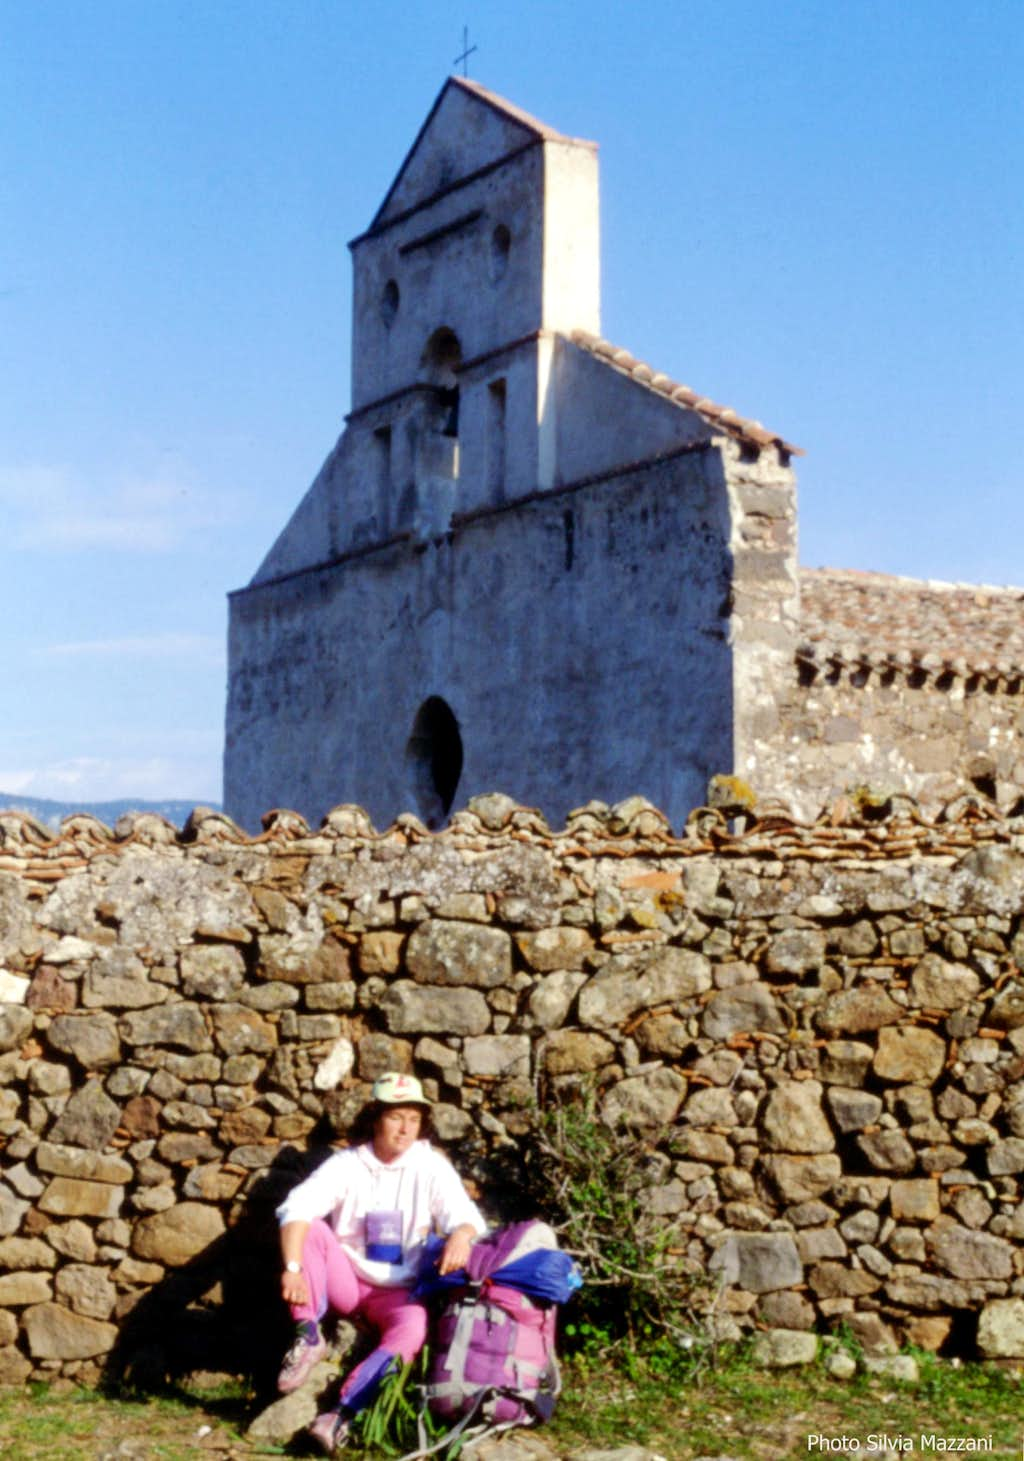 The secluded old church of S. Pietro in Golgo